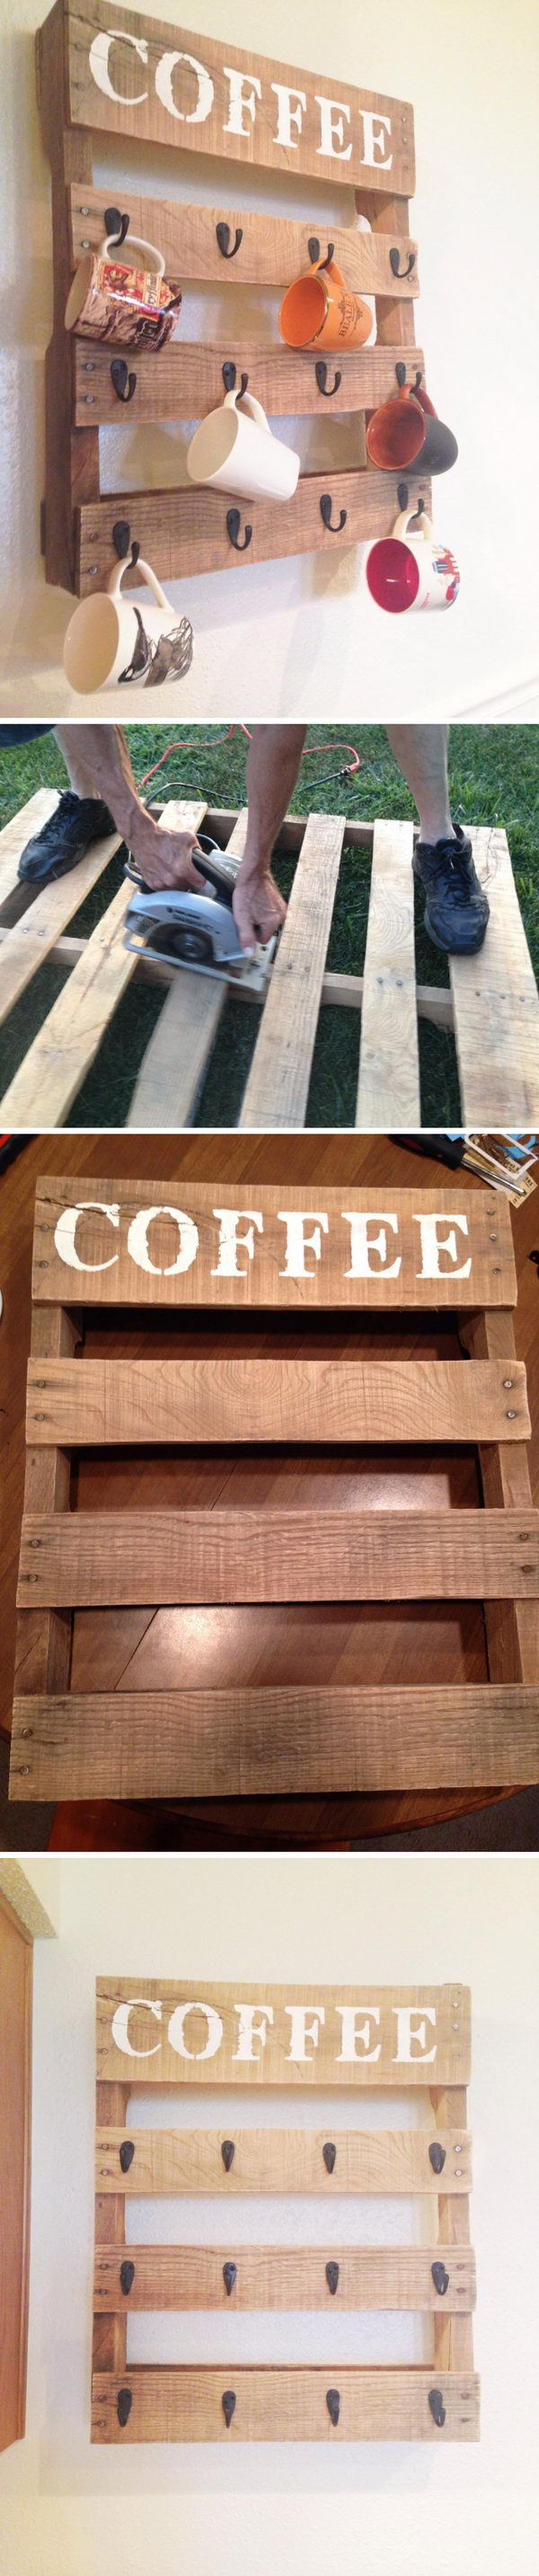 Coffee Mug Rack.